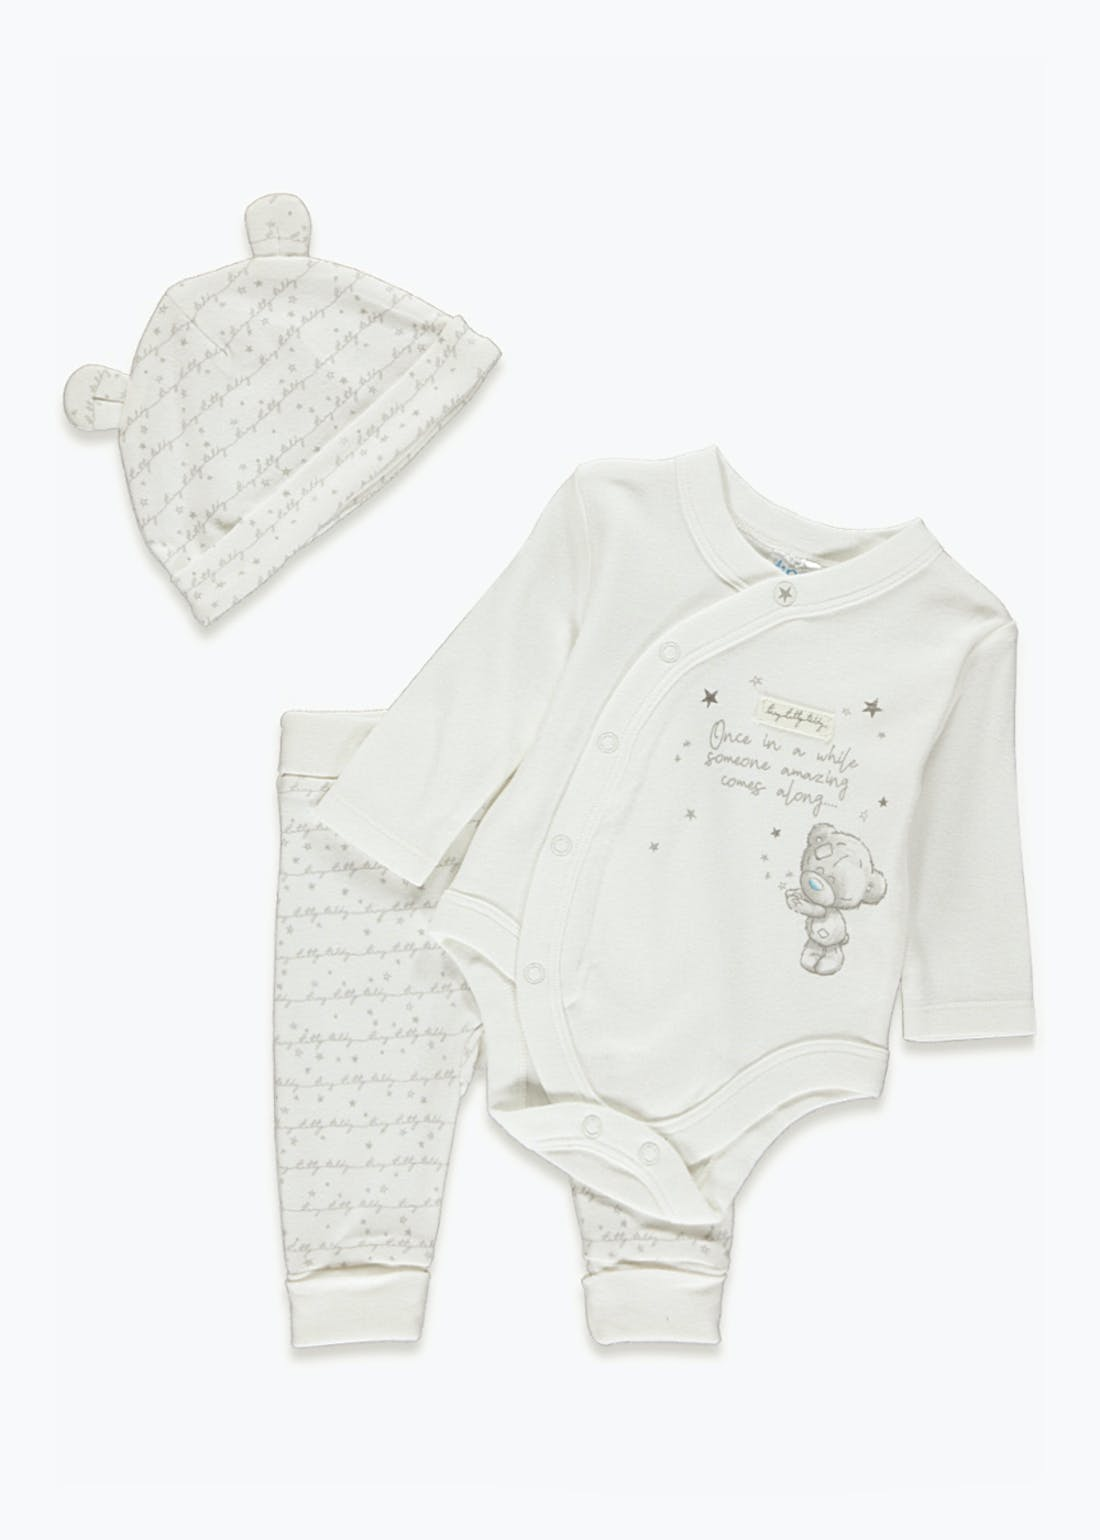 Tiny Tatty Teddy Baby Grow Gift Set (Newborn-9mths)